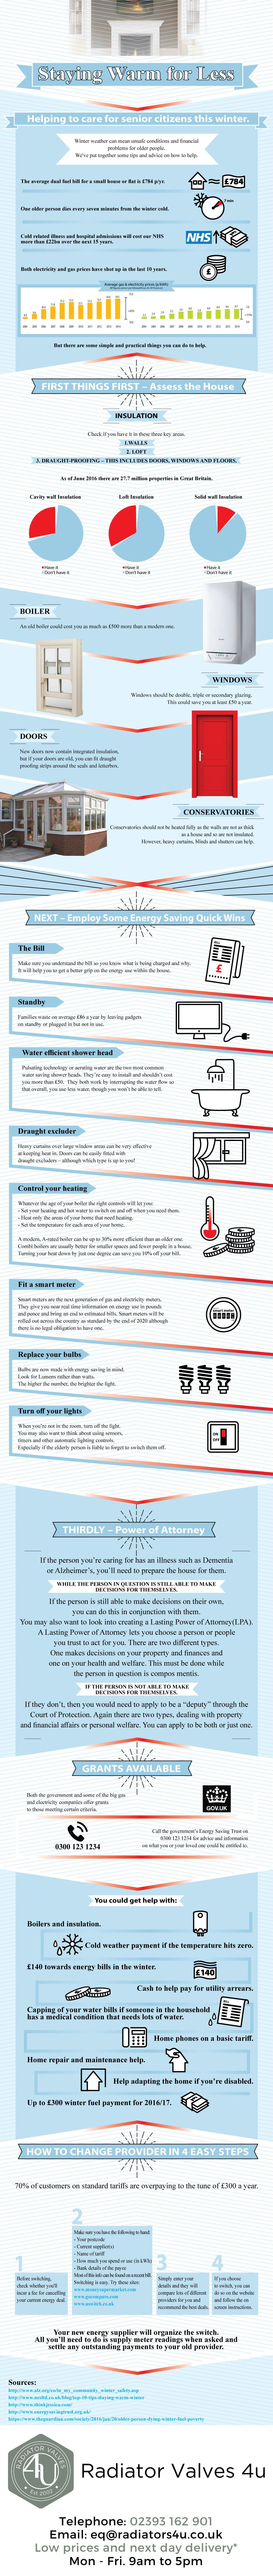 Infographic - Staying warm for less